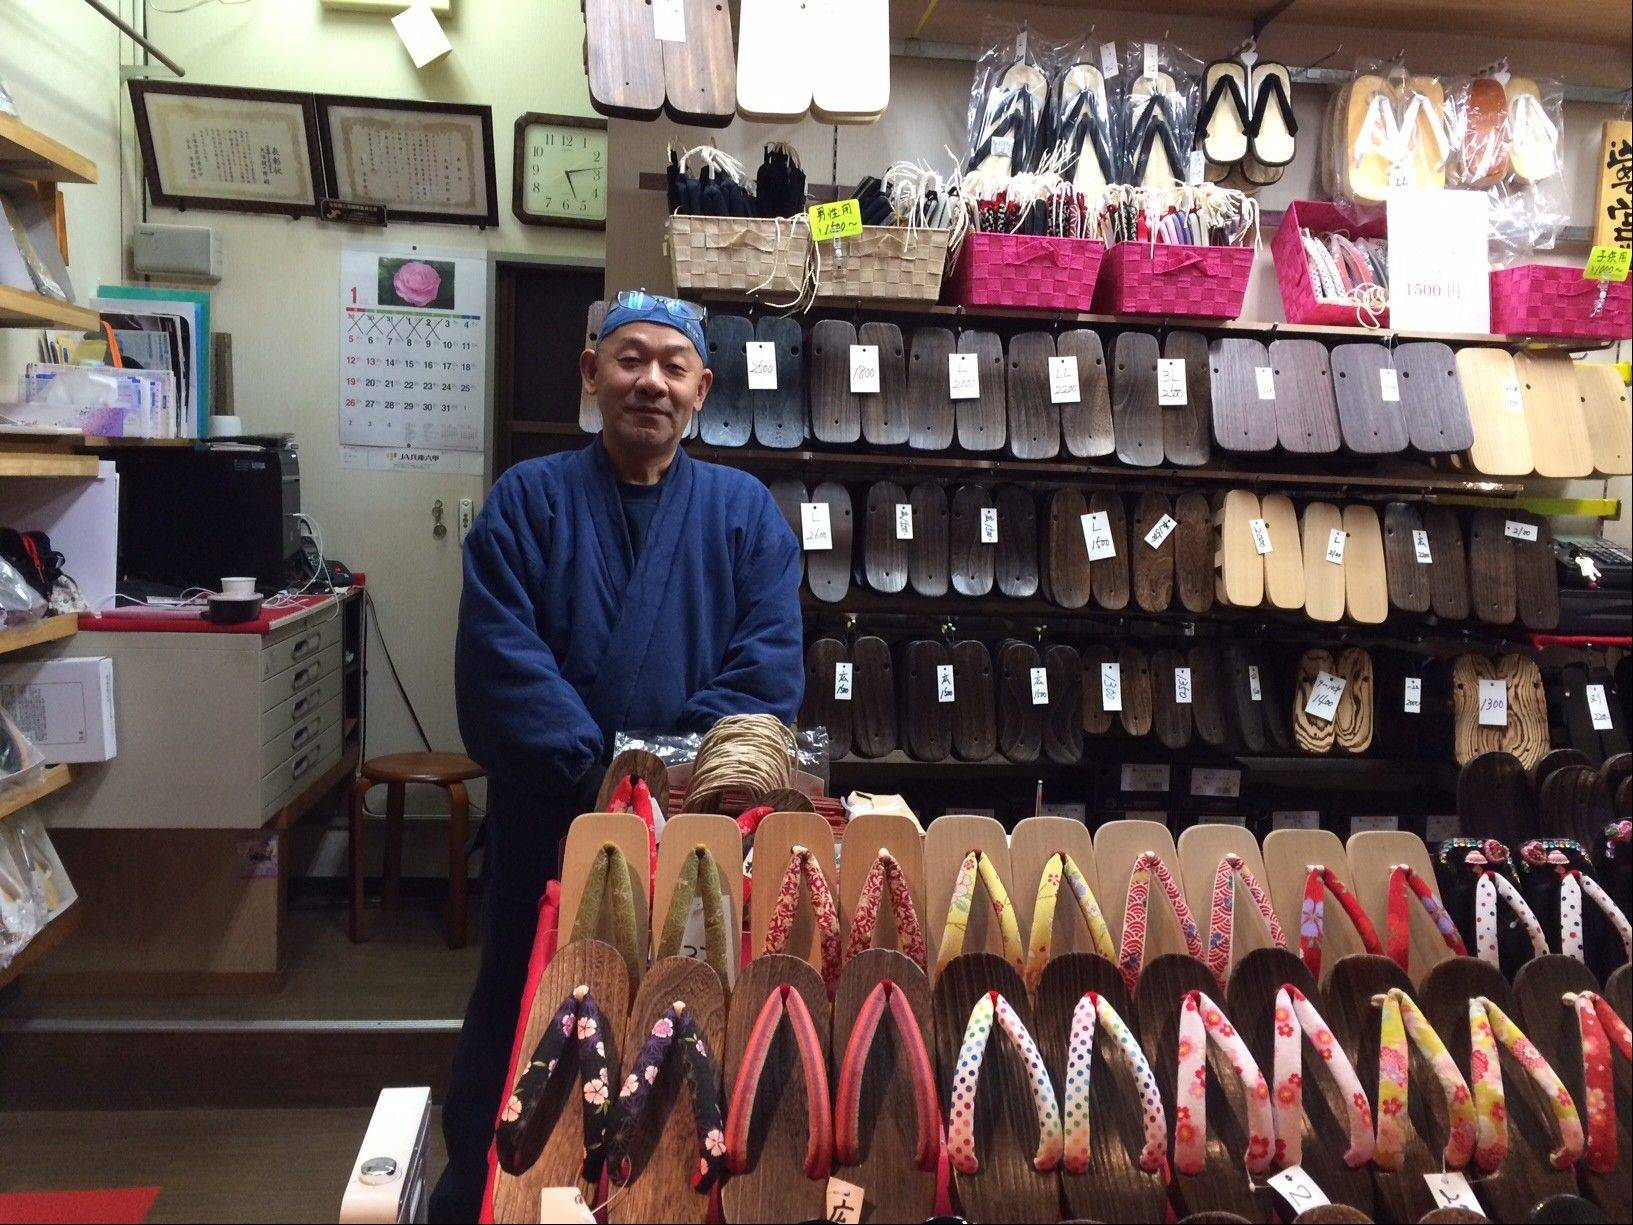 Hiroyuki Oura sells traditional clogs and sandals along the pathway to the shrine of the fire god at the Kiyoshikojin Seicho-ji temple in Japan.